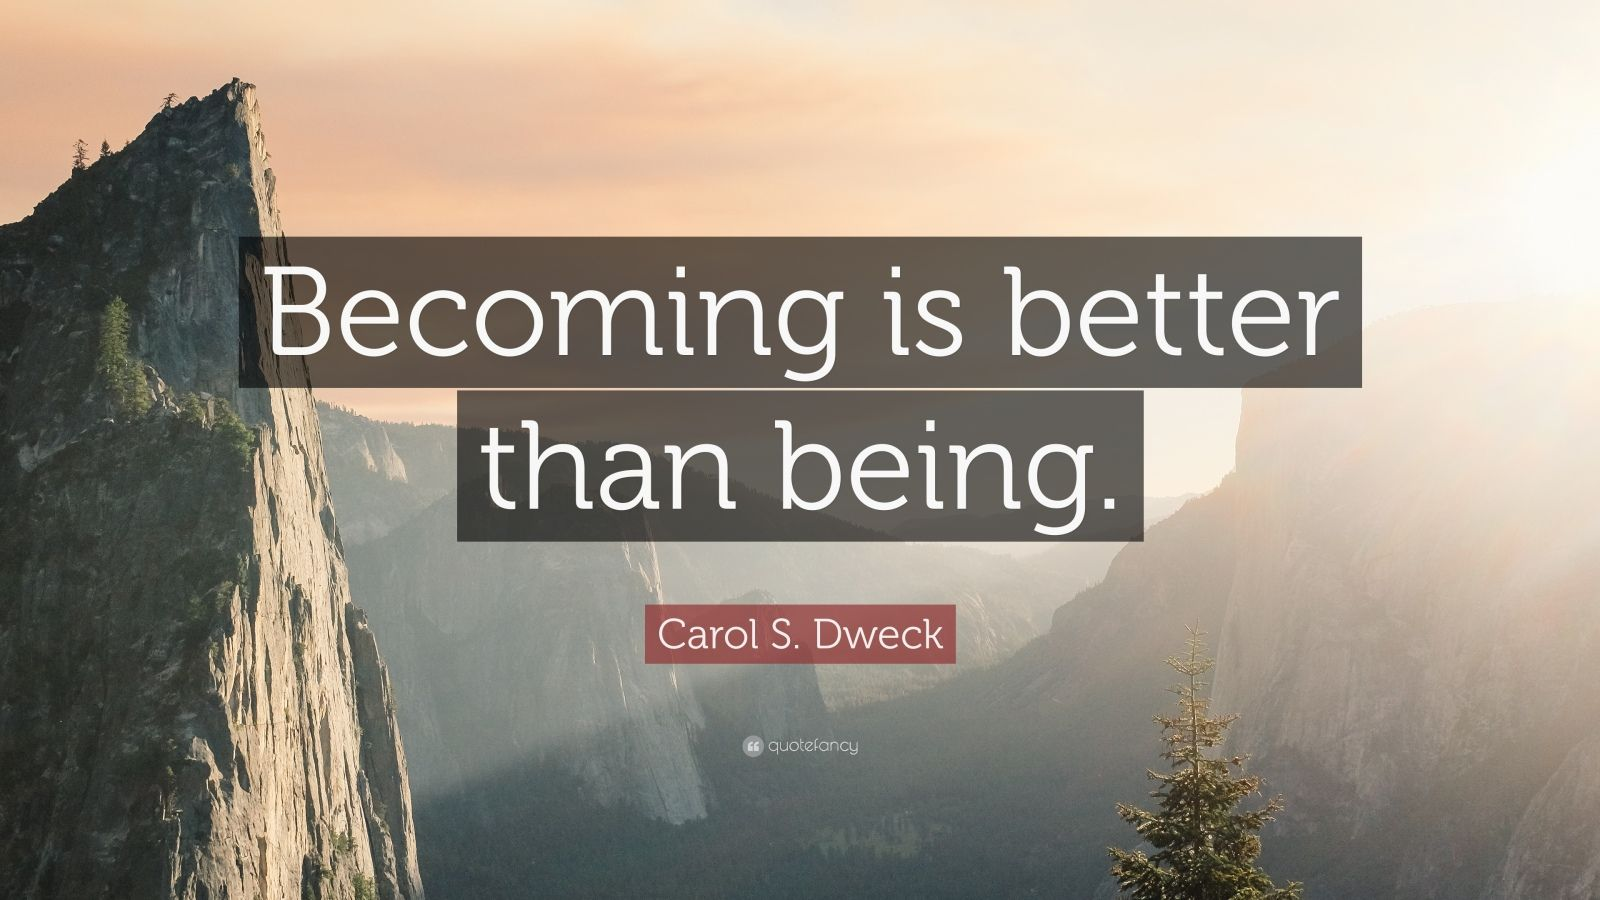 Weight Loss Inspirational Quotes Wallpaper Carol S Dweck Quote Becoming Is Better Than Being 12